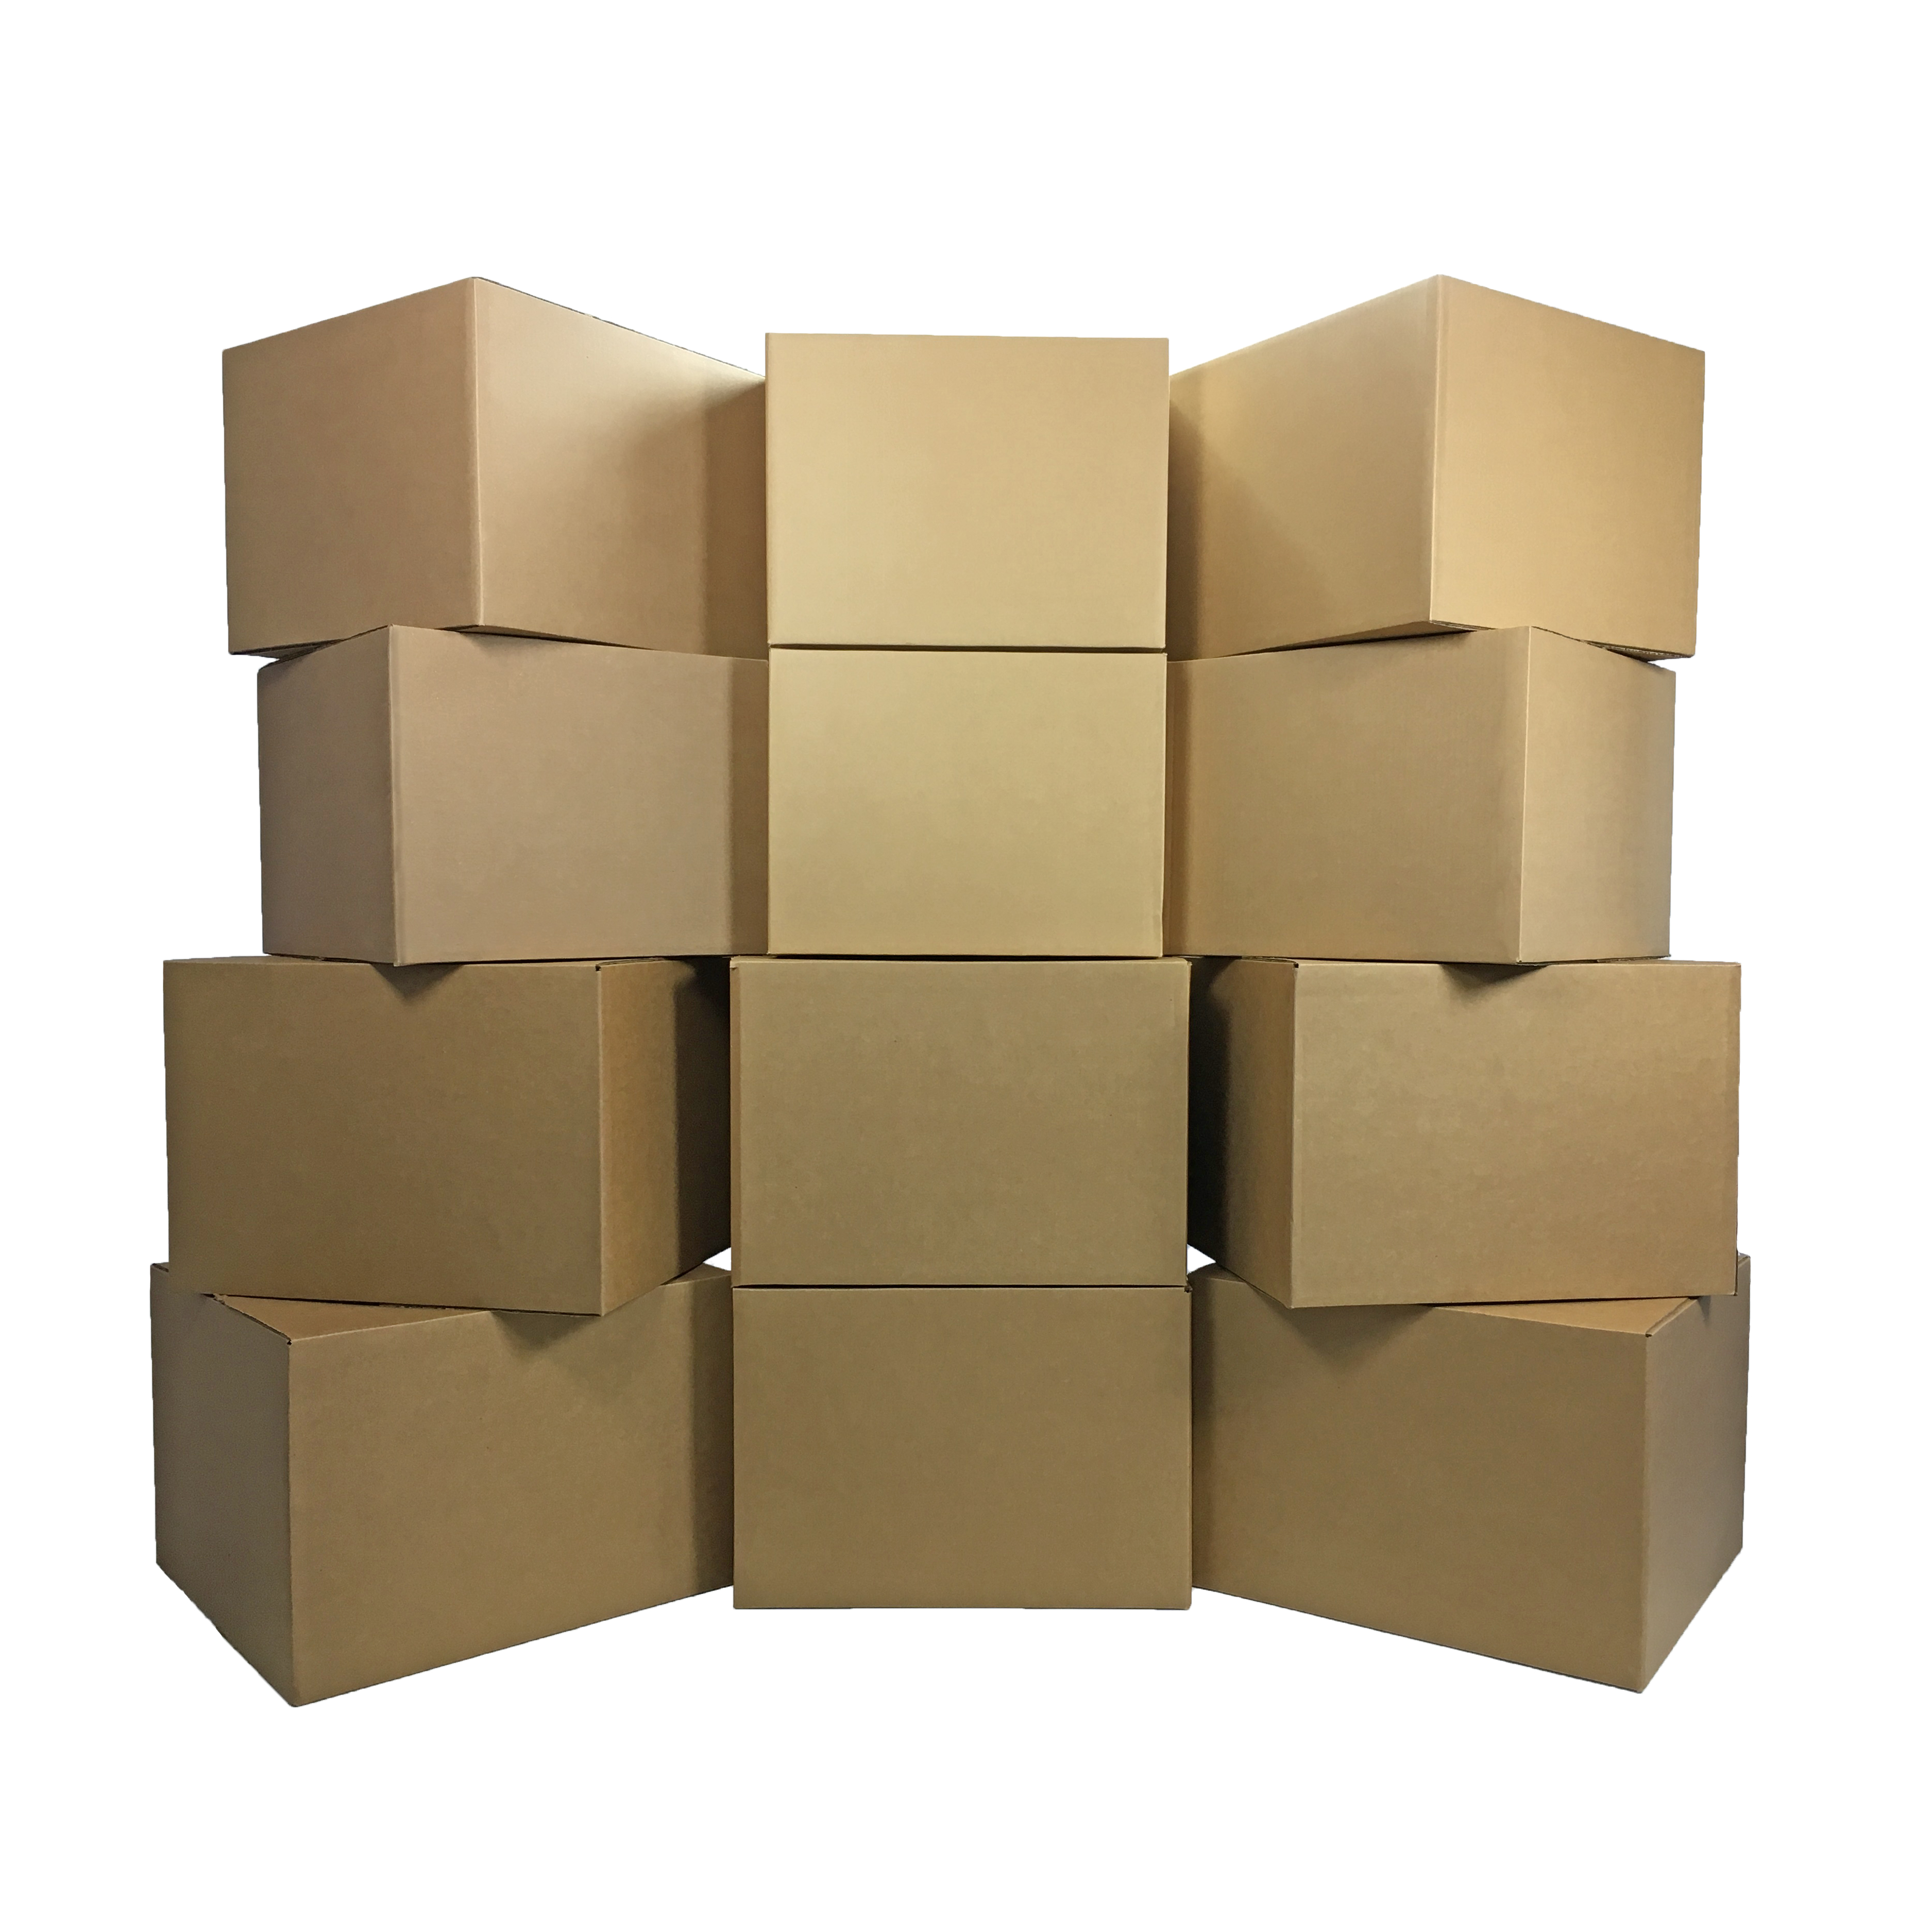 Free Cardboard Boxes Melbourne Uboxes Large Moving Boxes 20x20x15in 12 Pack Cardboard Boxes